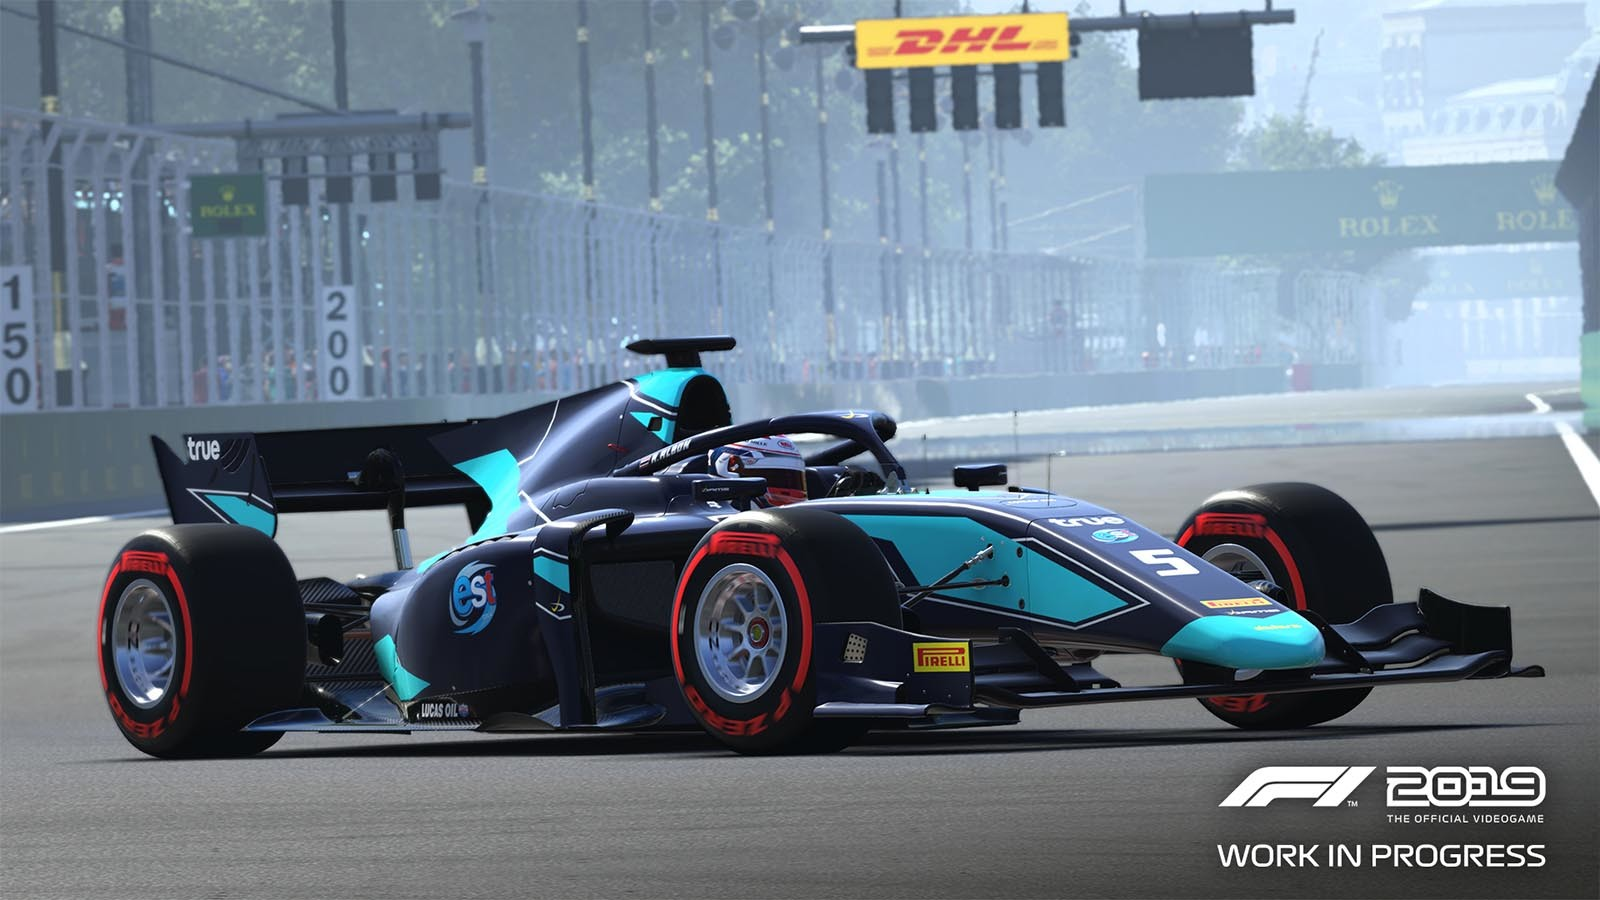 F1 2019 Steam CD Key for PC - Buy now